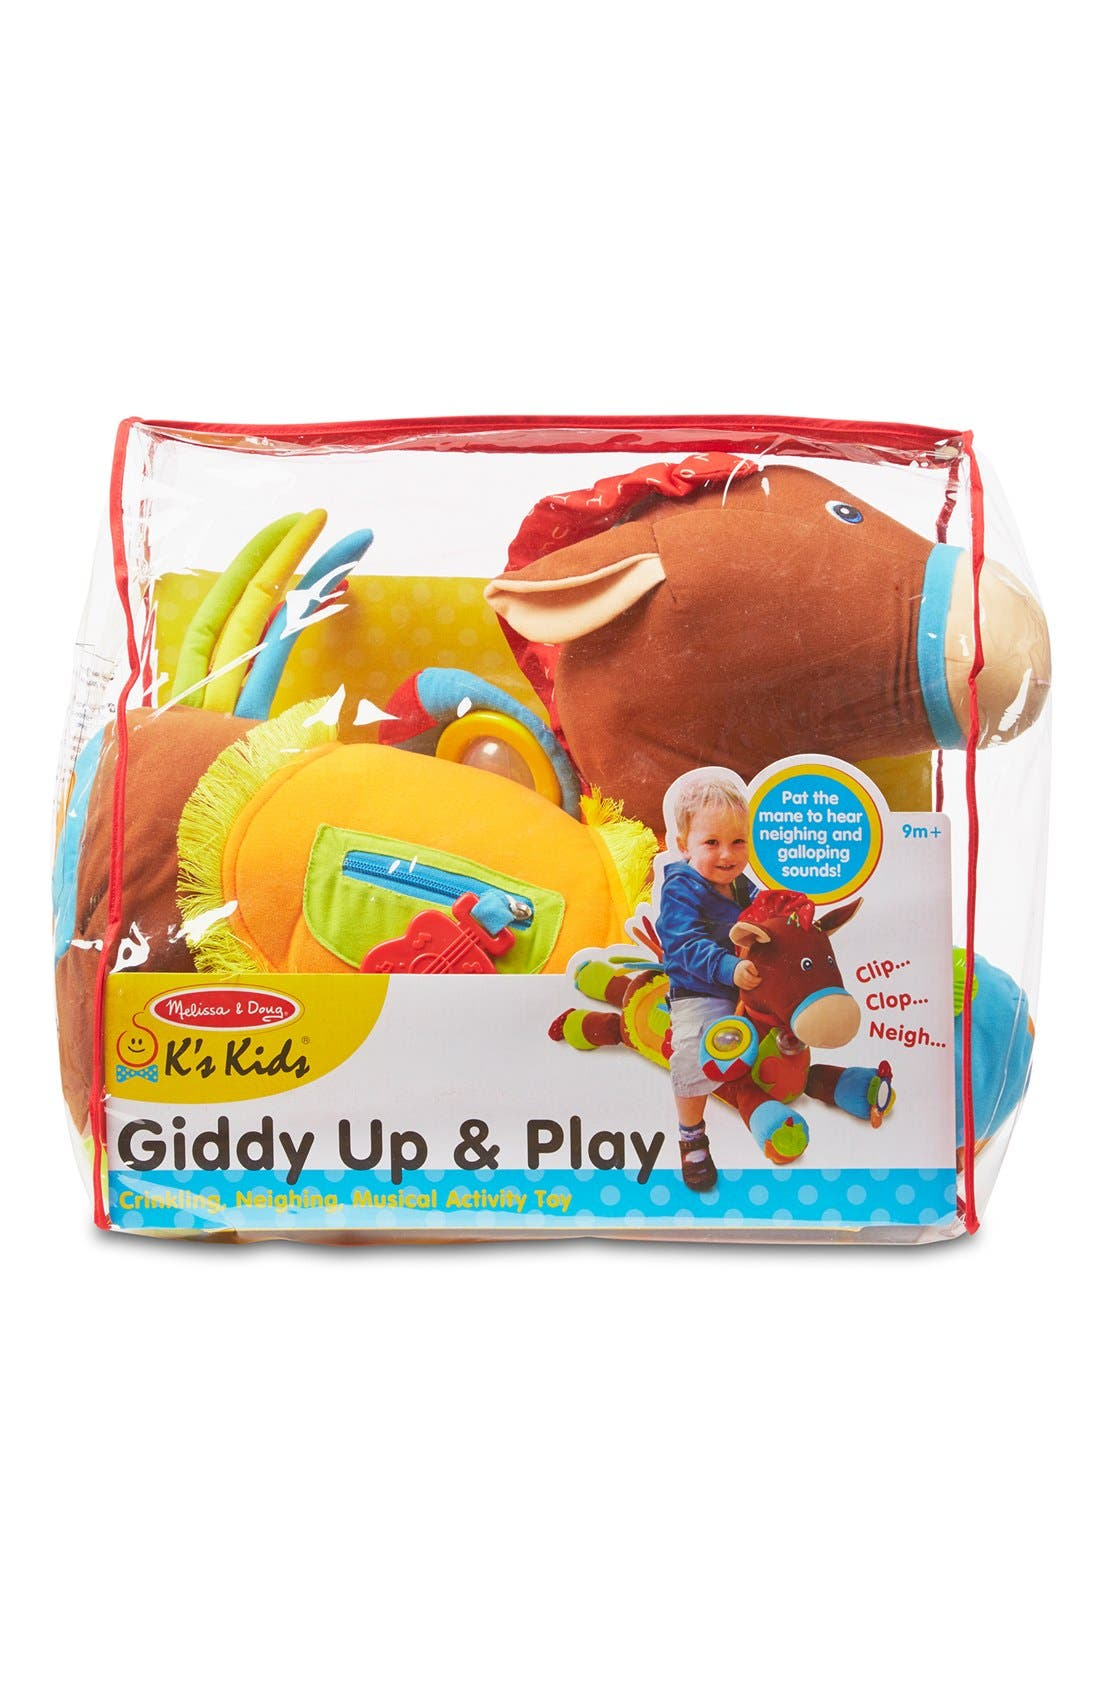 MELISSA & DOUG 'Giddy Up & Play' Activity